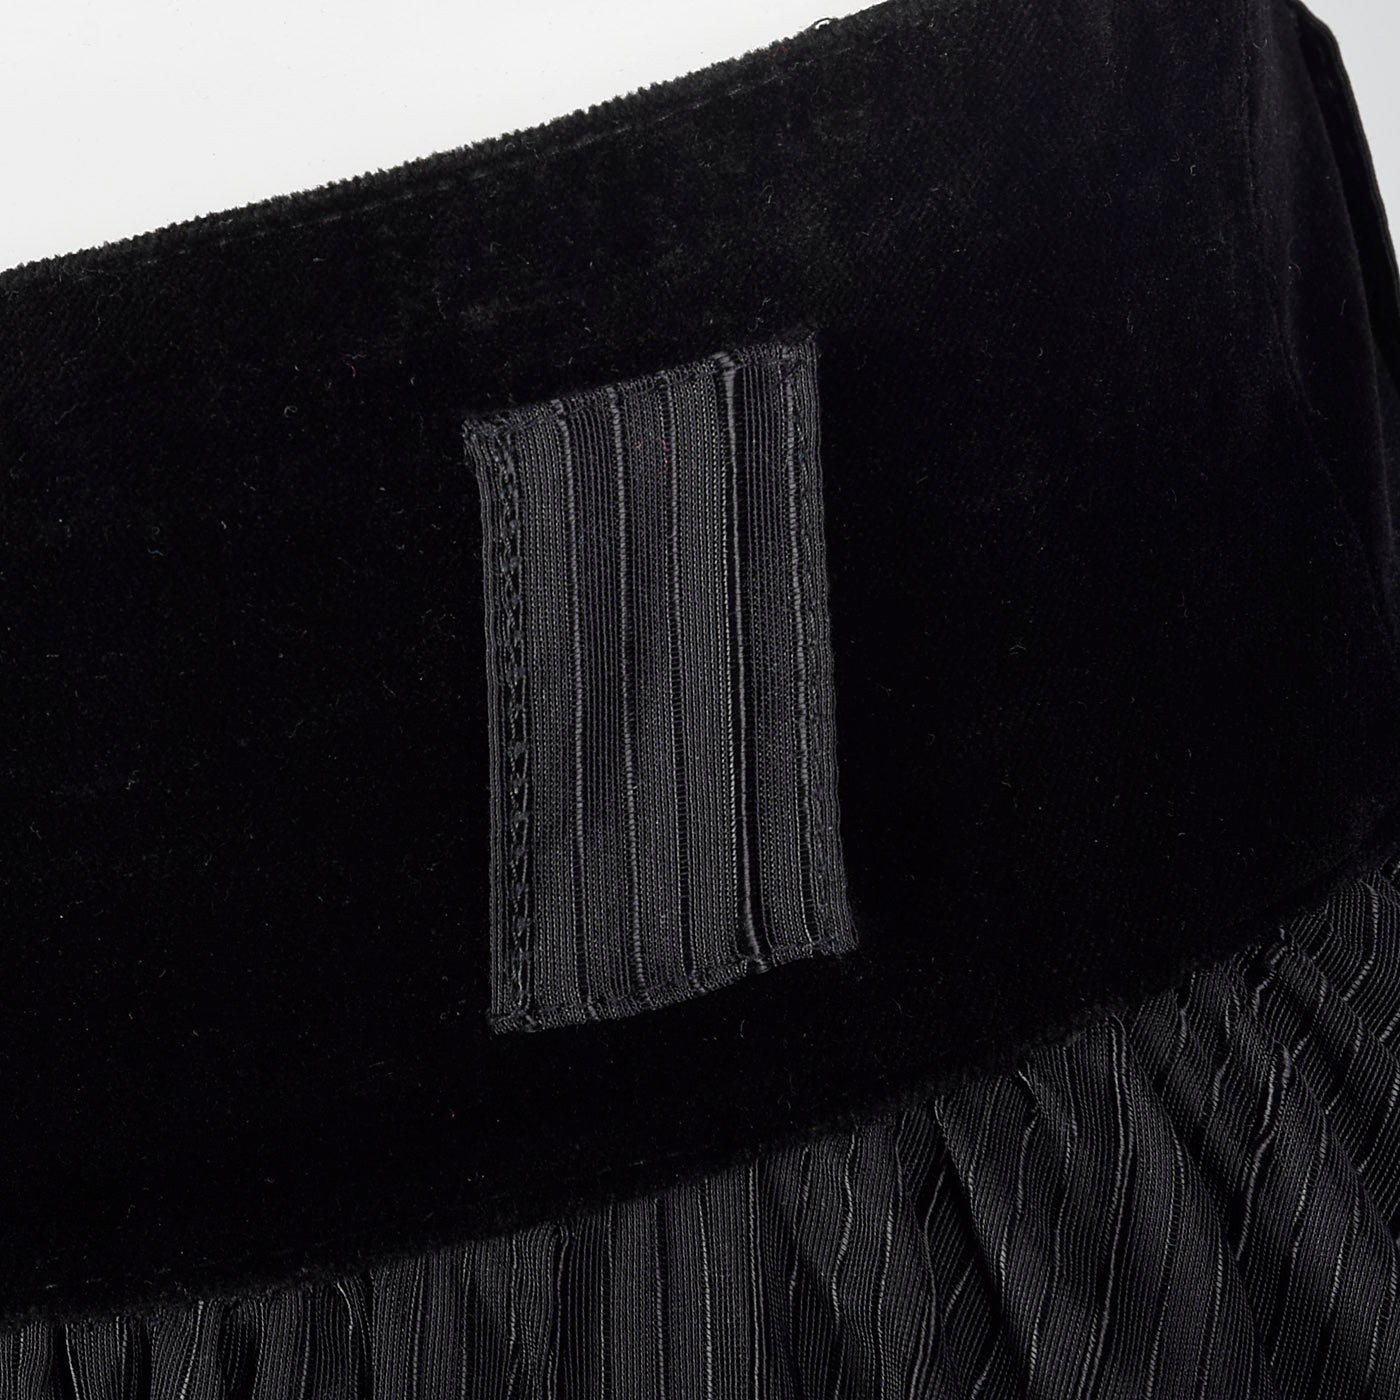 1980s Black Full Circle Skirt